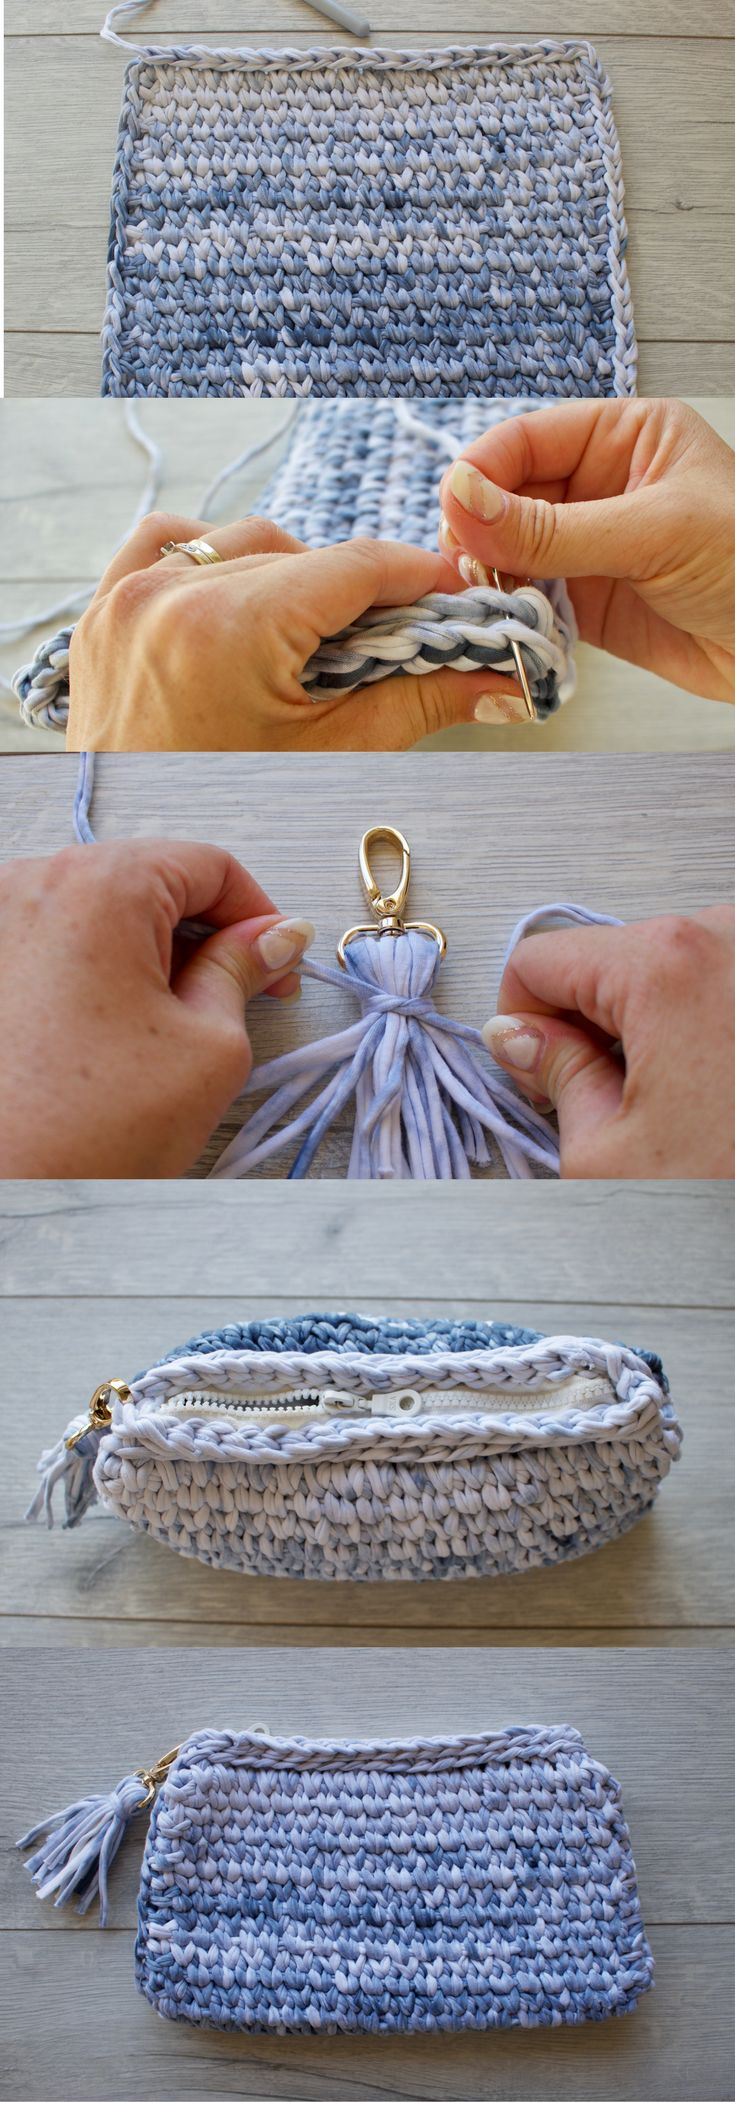 Crochet clutch pattern with zip. Step-by-step photo tutorial. Click to view!